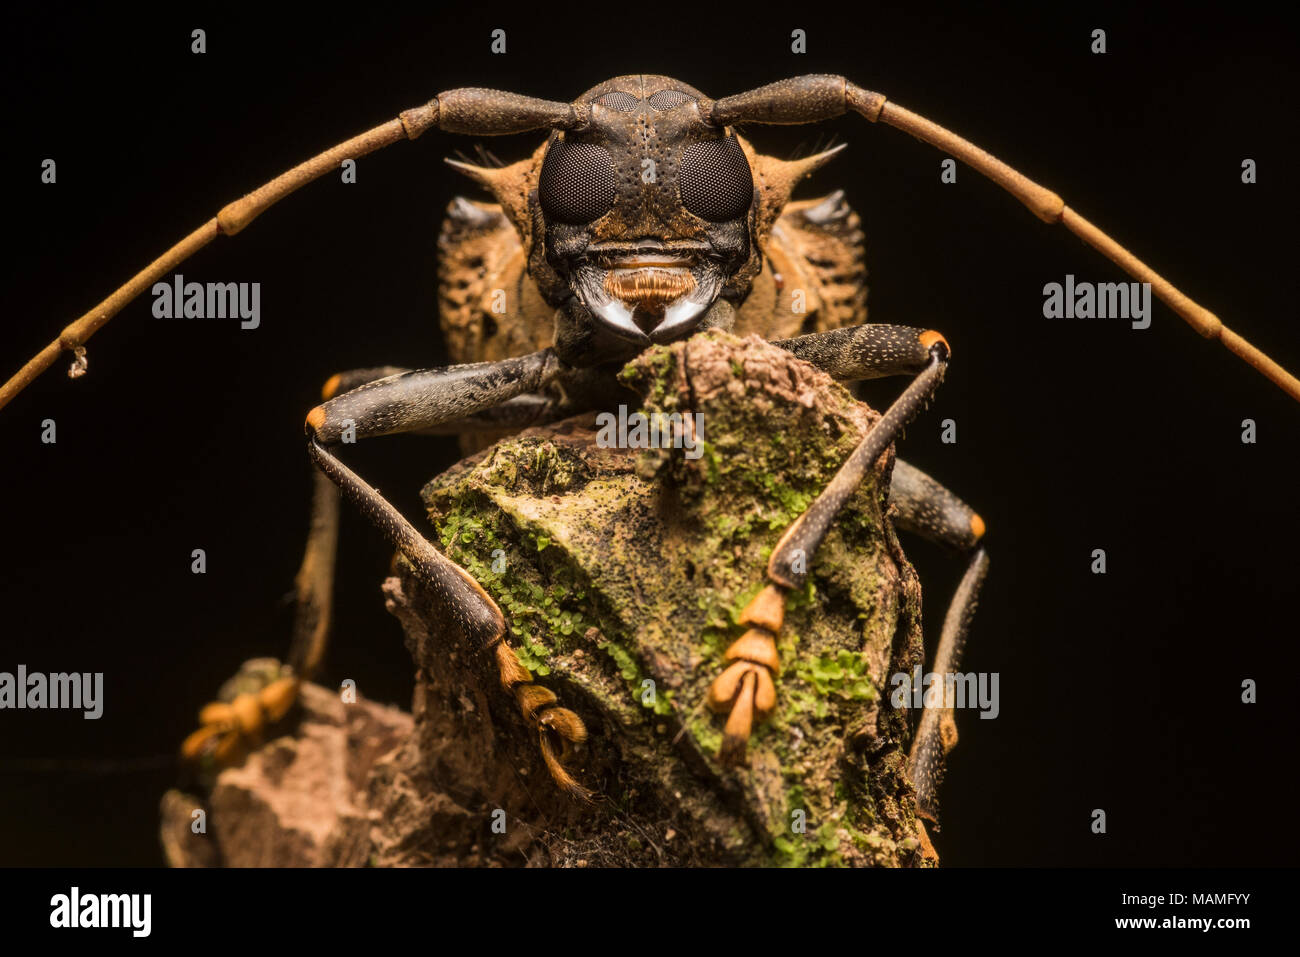 A tropical beetle portrait from the Peruvian jungle near Tarapoto, an impressive beetle even more so when seen up close. - Stock Image